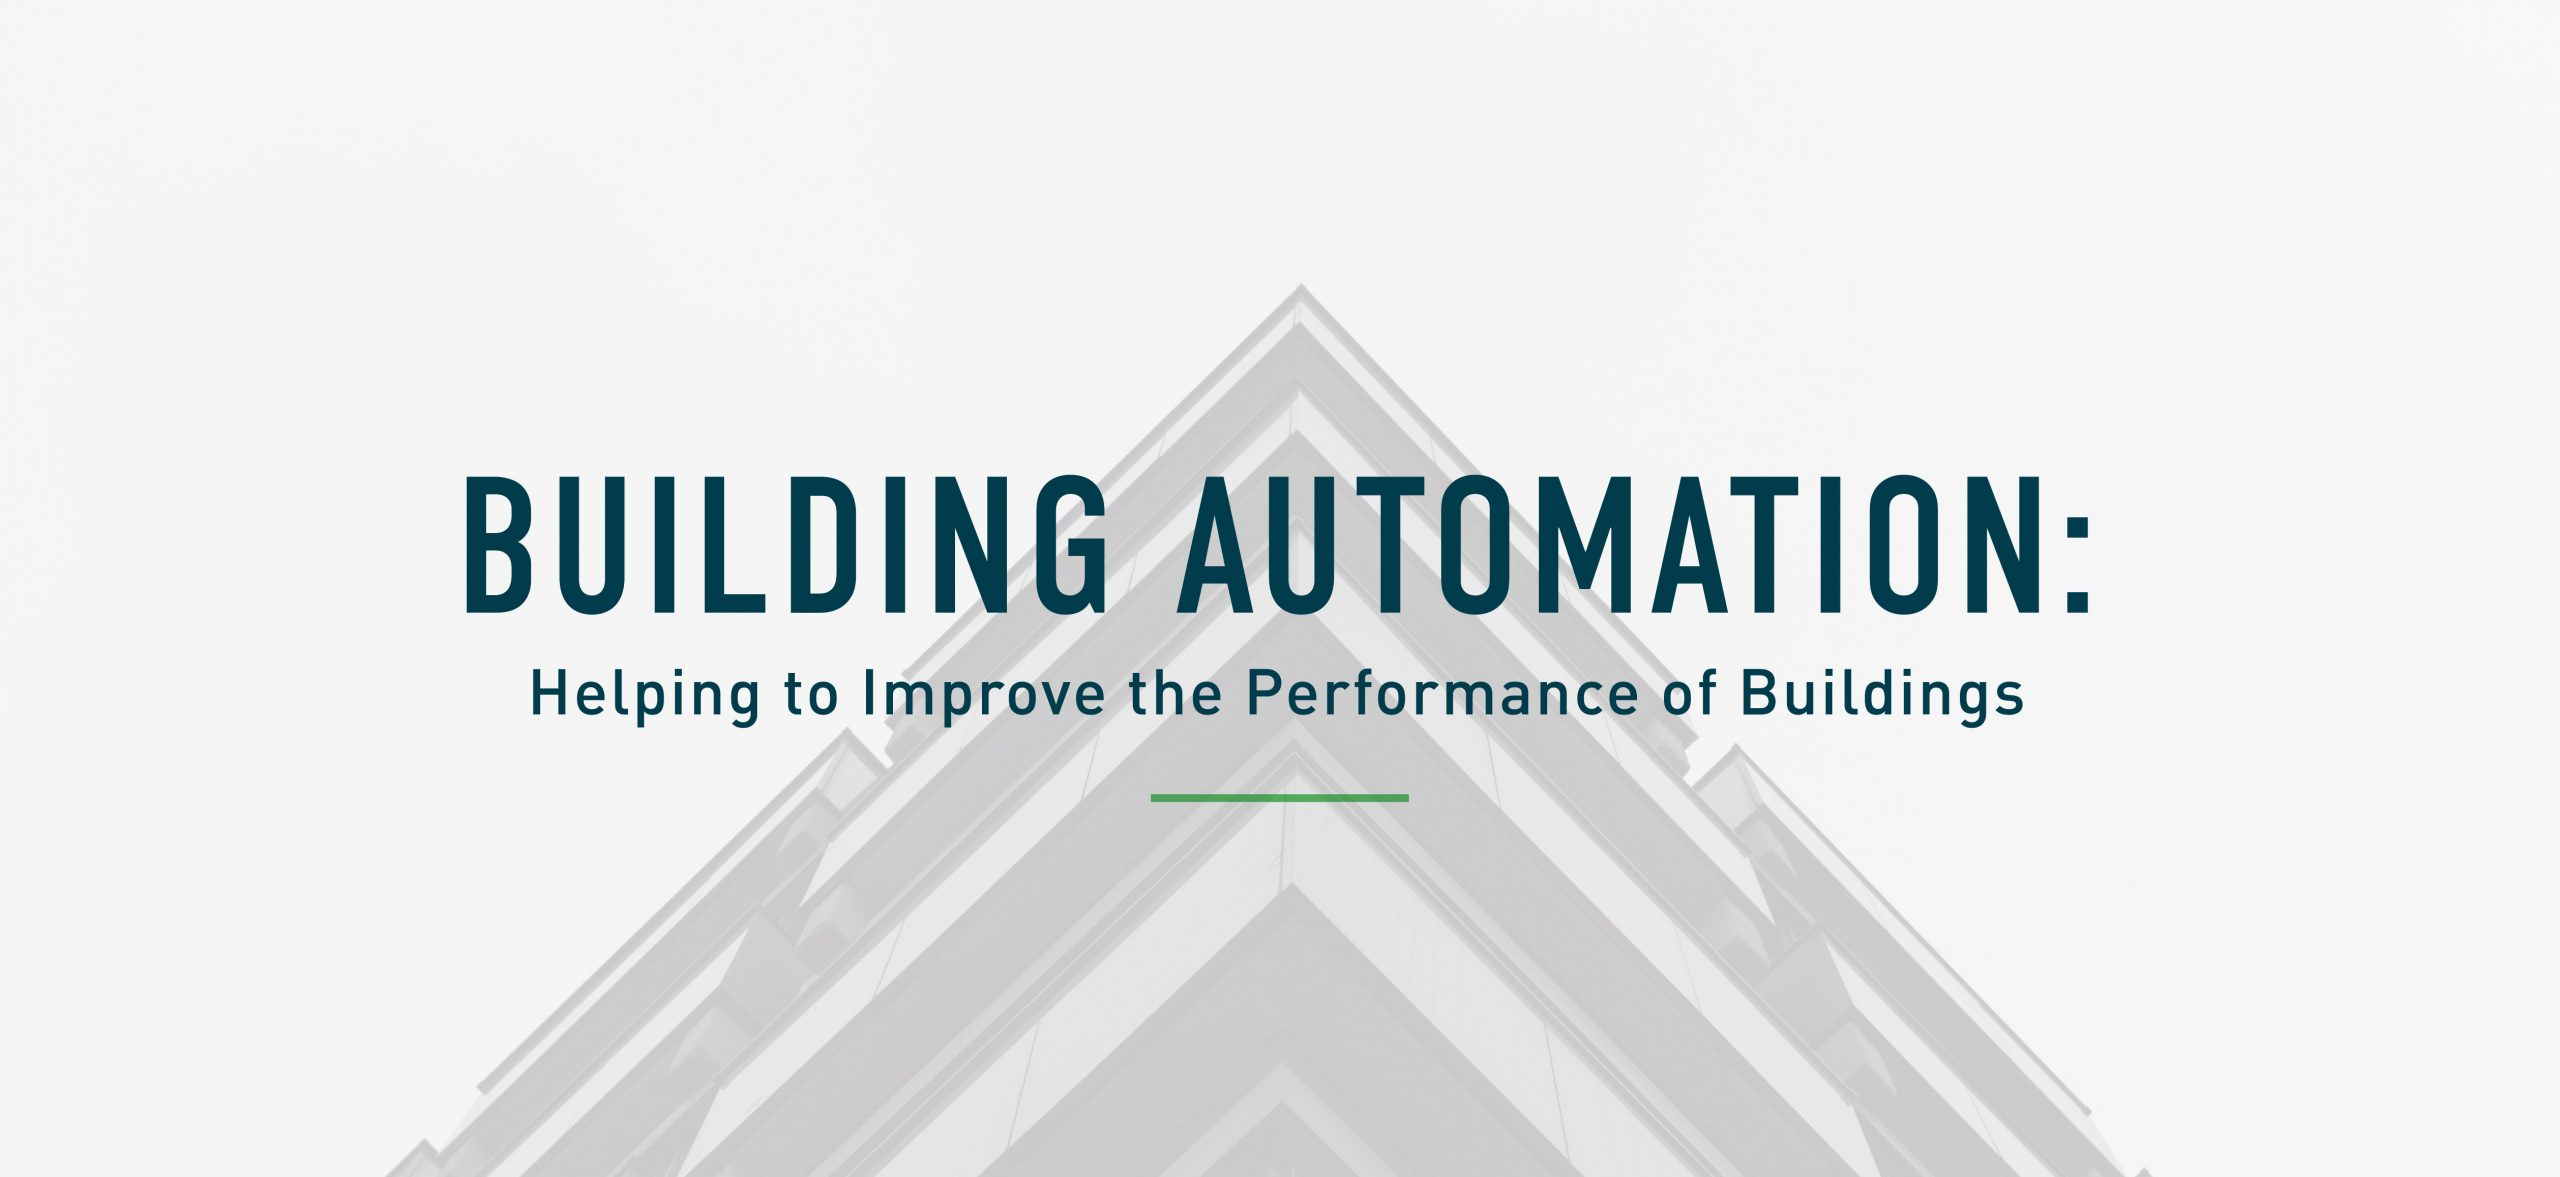 Building Automation: Improving Building Performance